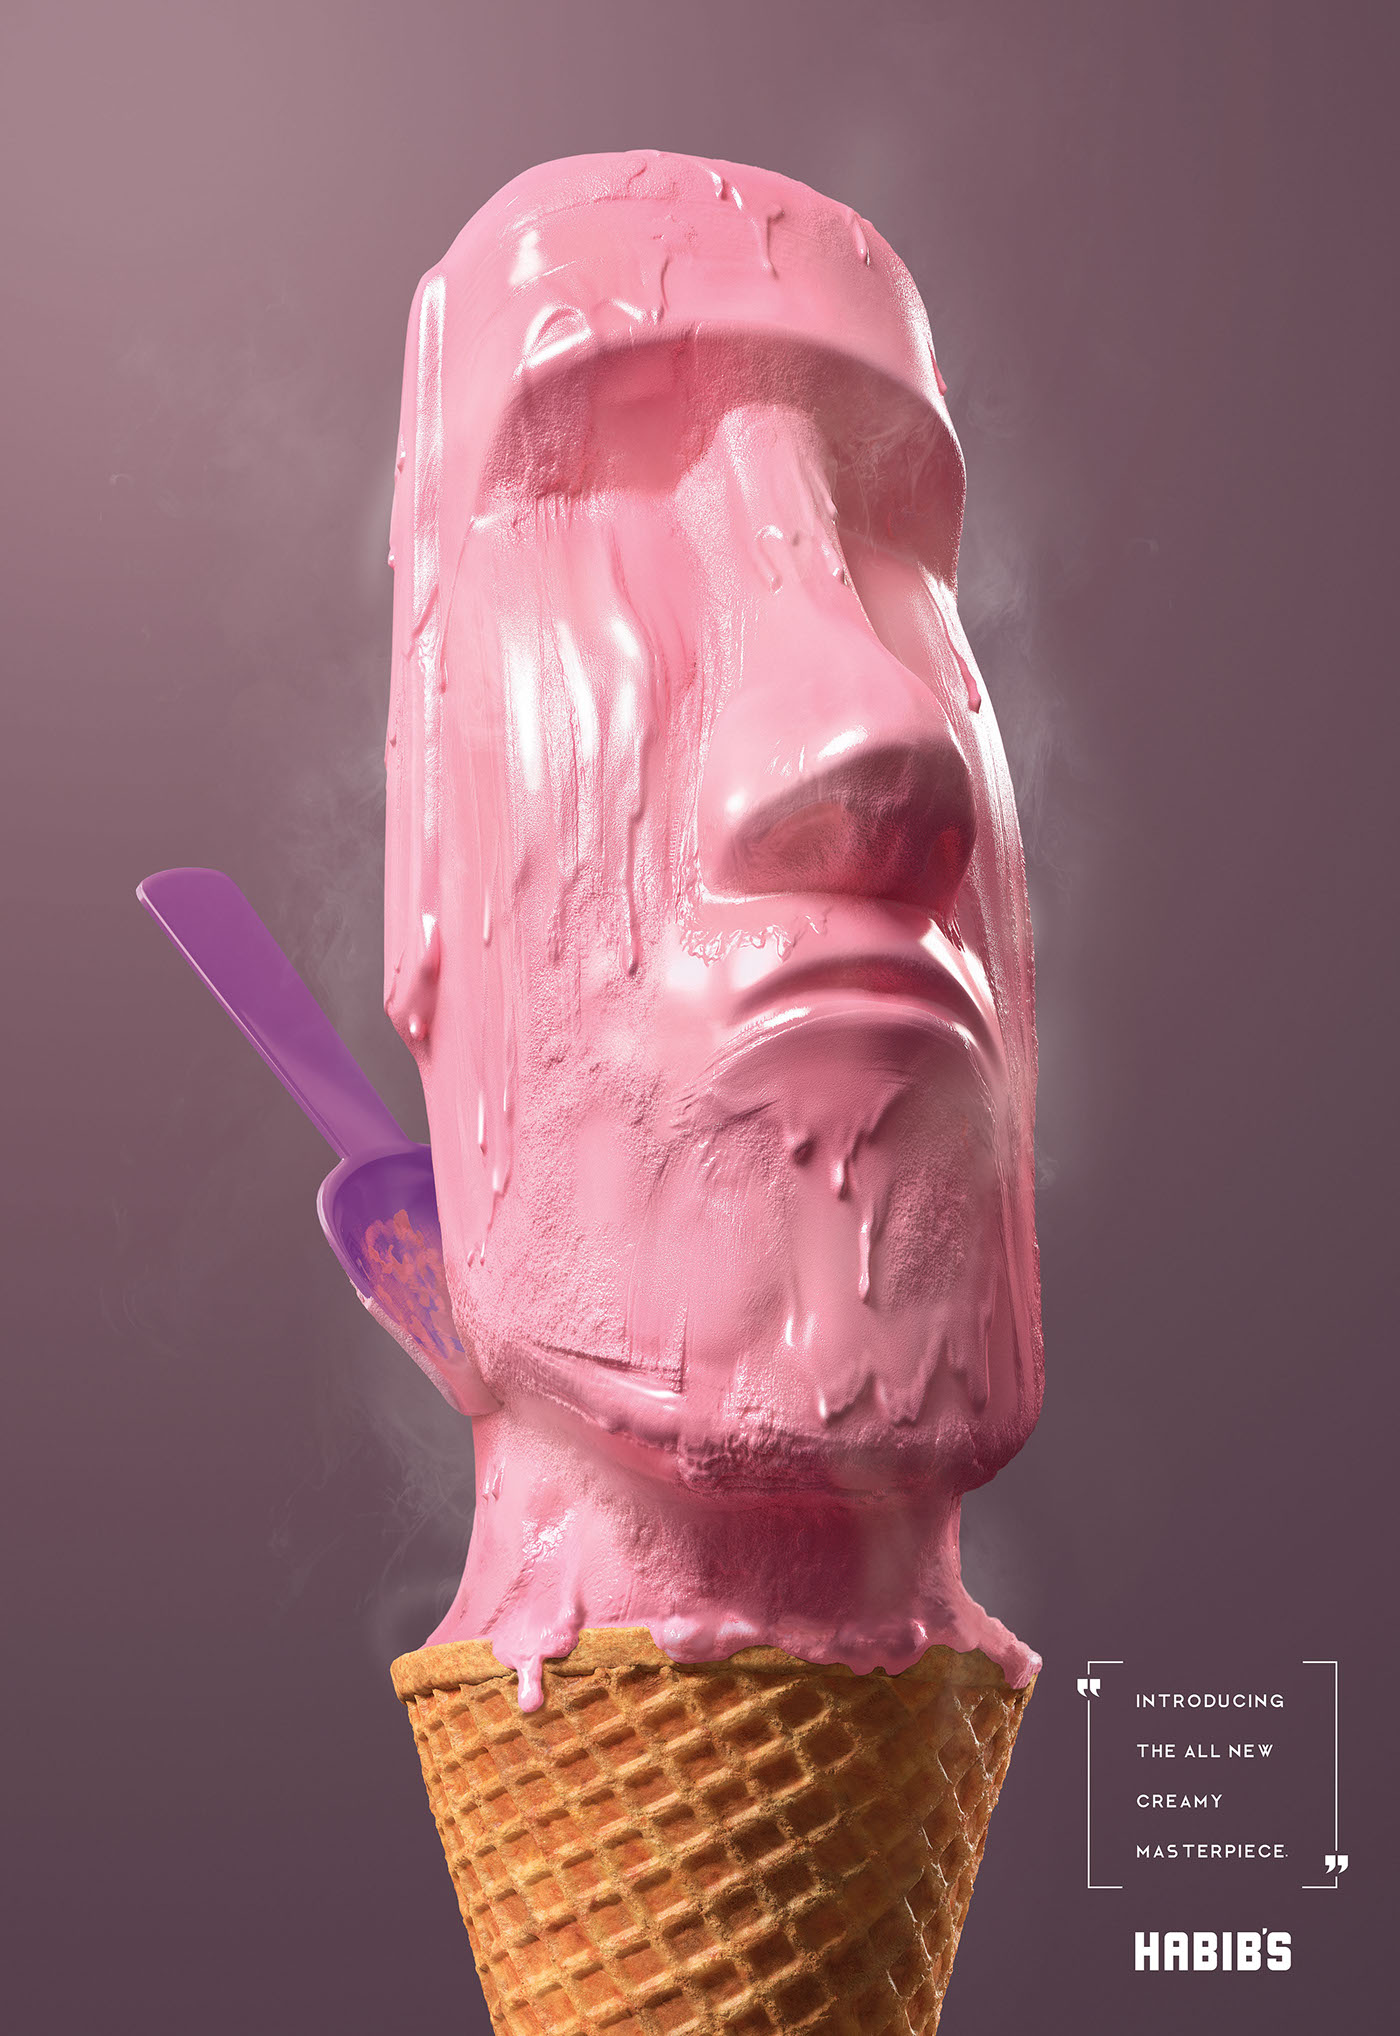 Habib's Ice Cream Sculpture - Introducing the all new creamy masterpiece - Moai